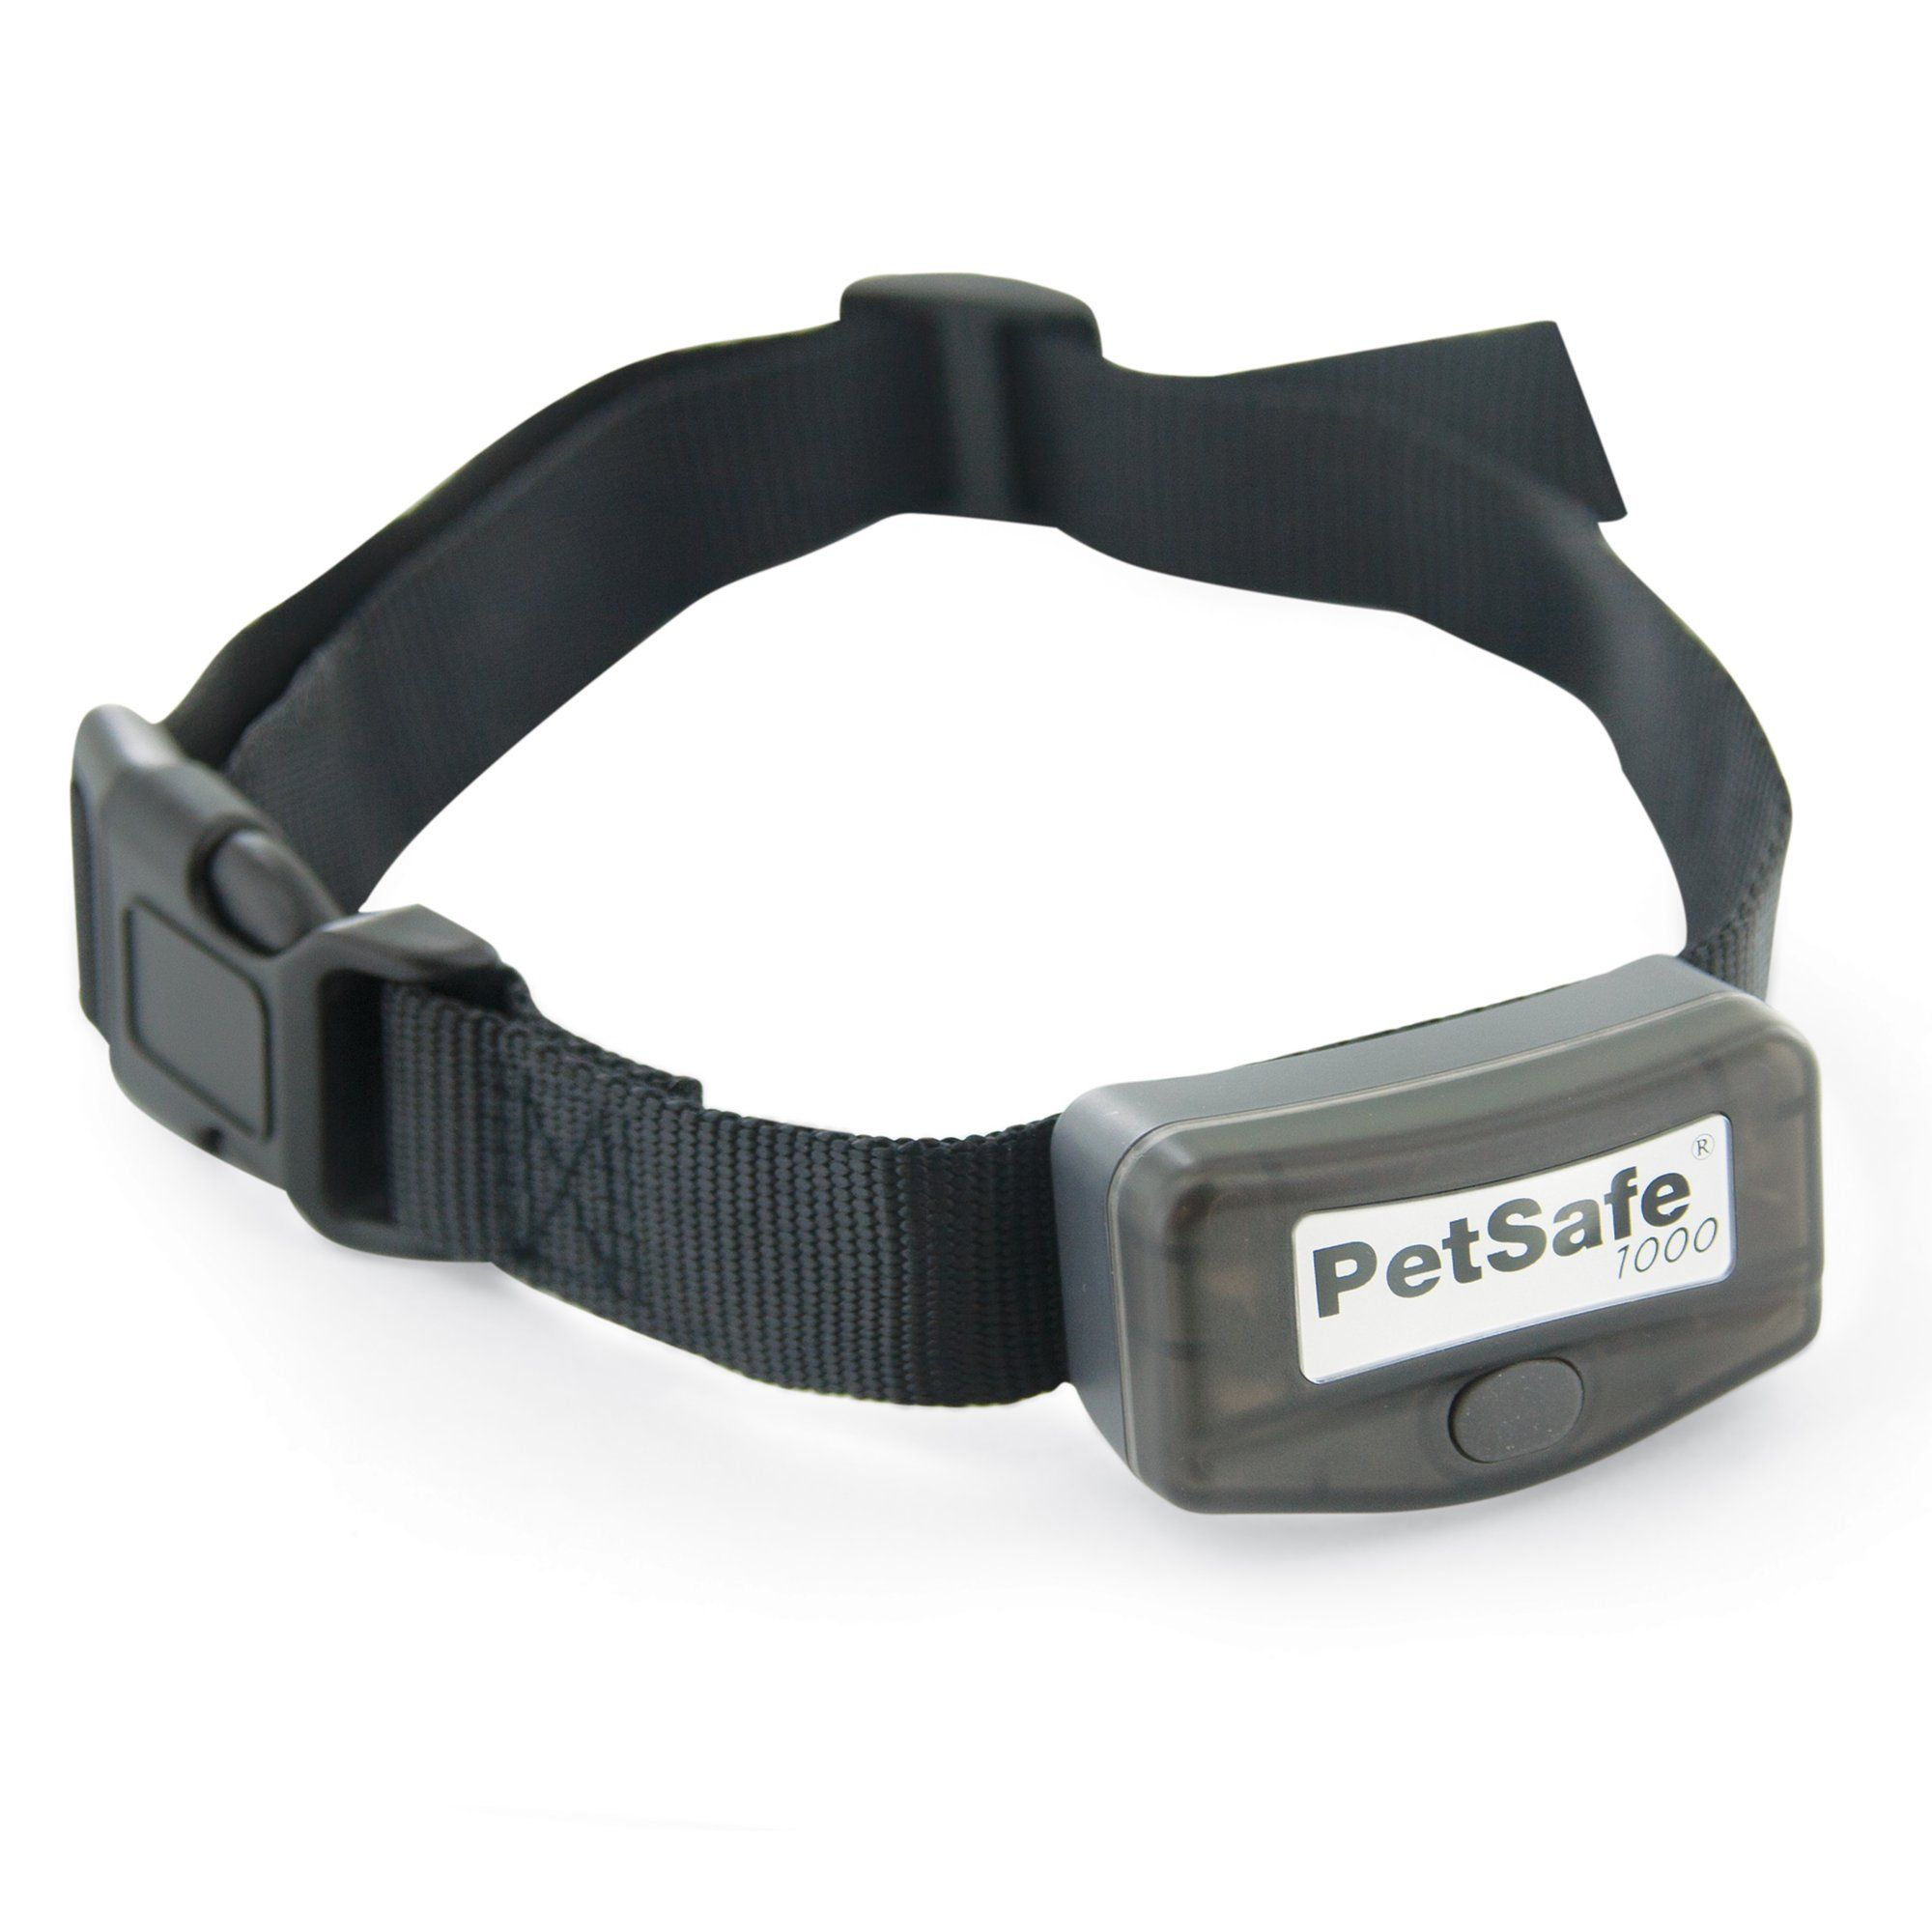 Petsafe Elite Big Dog Add A Dog Receiver Collar For The Elite Series Remote Trainers Big Dogs Big Dog Crates Training Collar